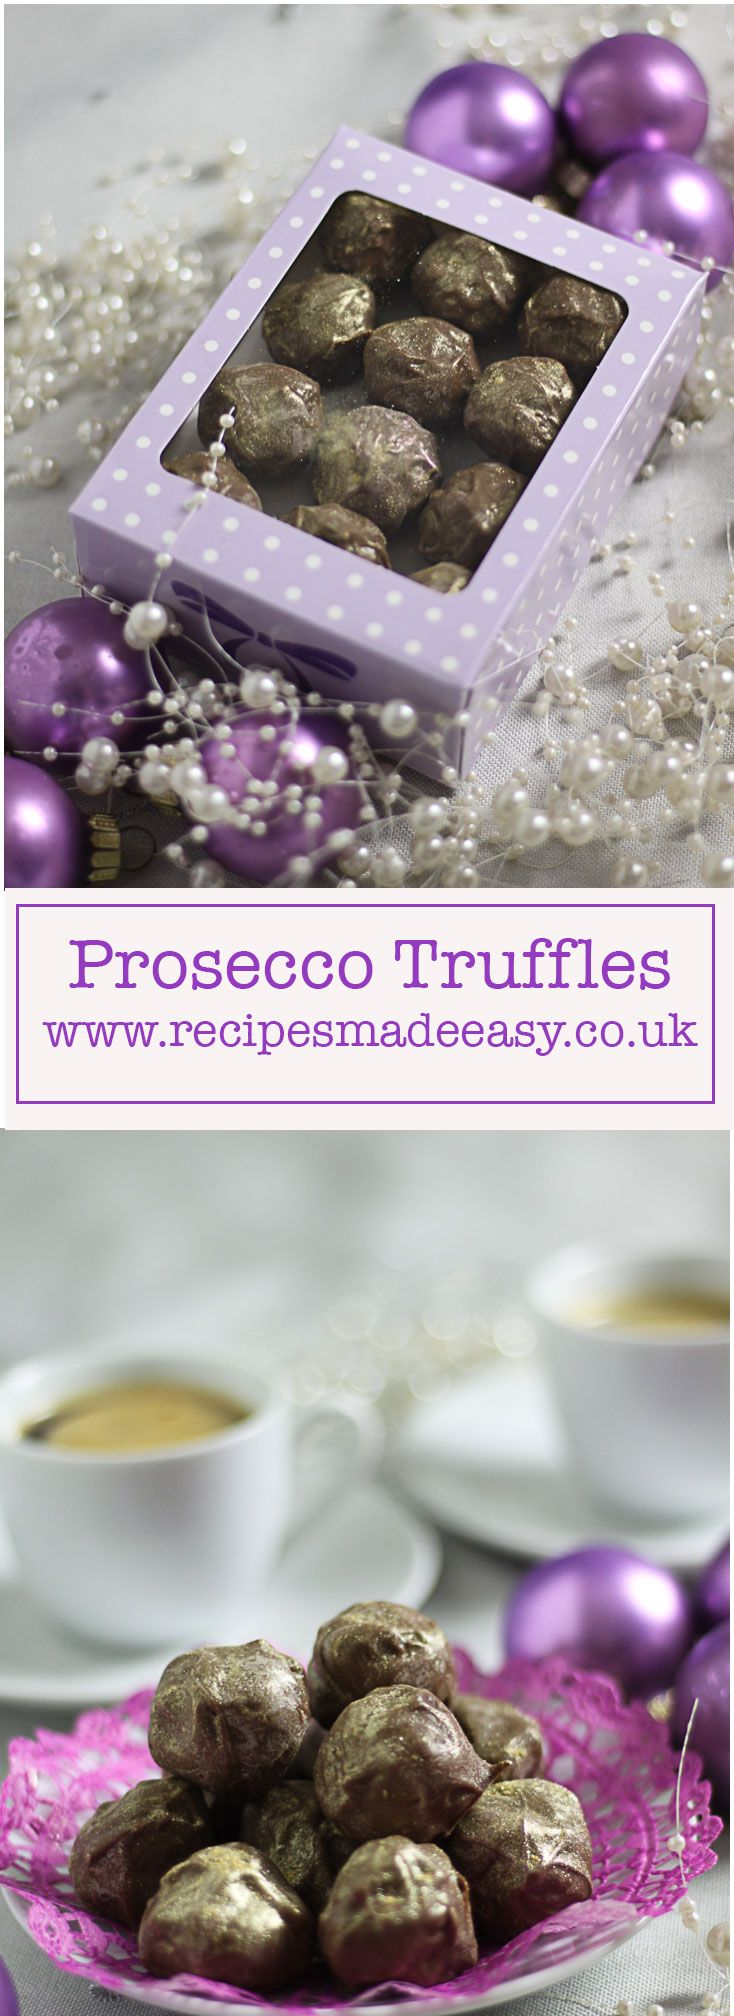 Prosecco truffles made easy. Flavoured with prosecco and encased in creamy milk chocolate, these truffles make a delicious indulgent treat.